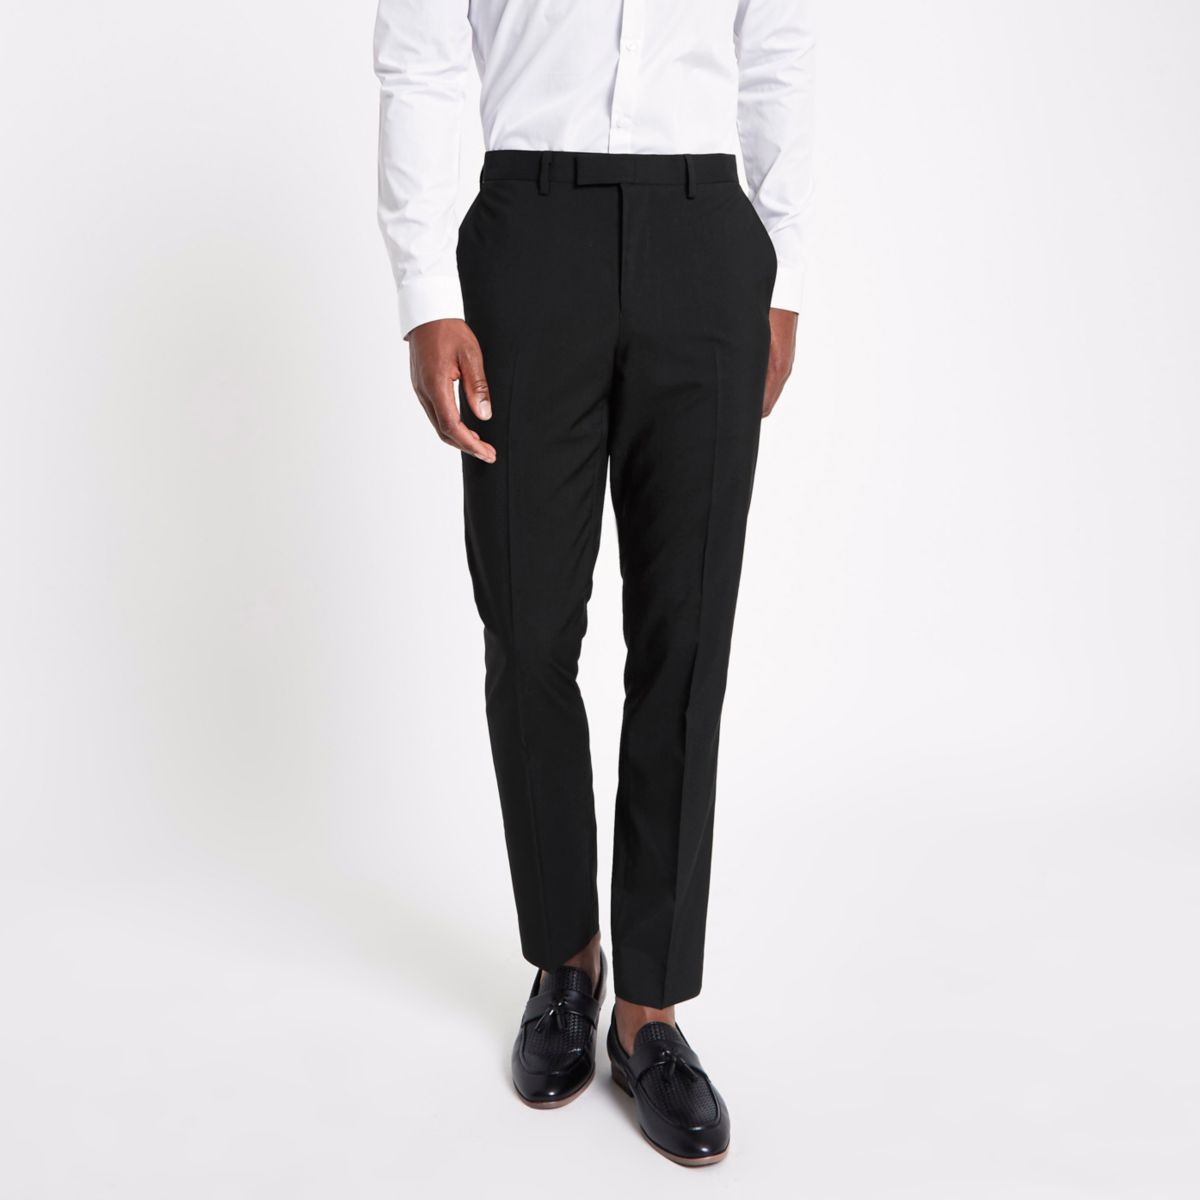 Black slim fit suit pants